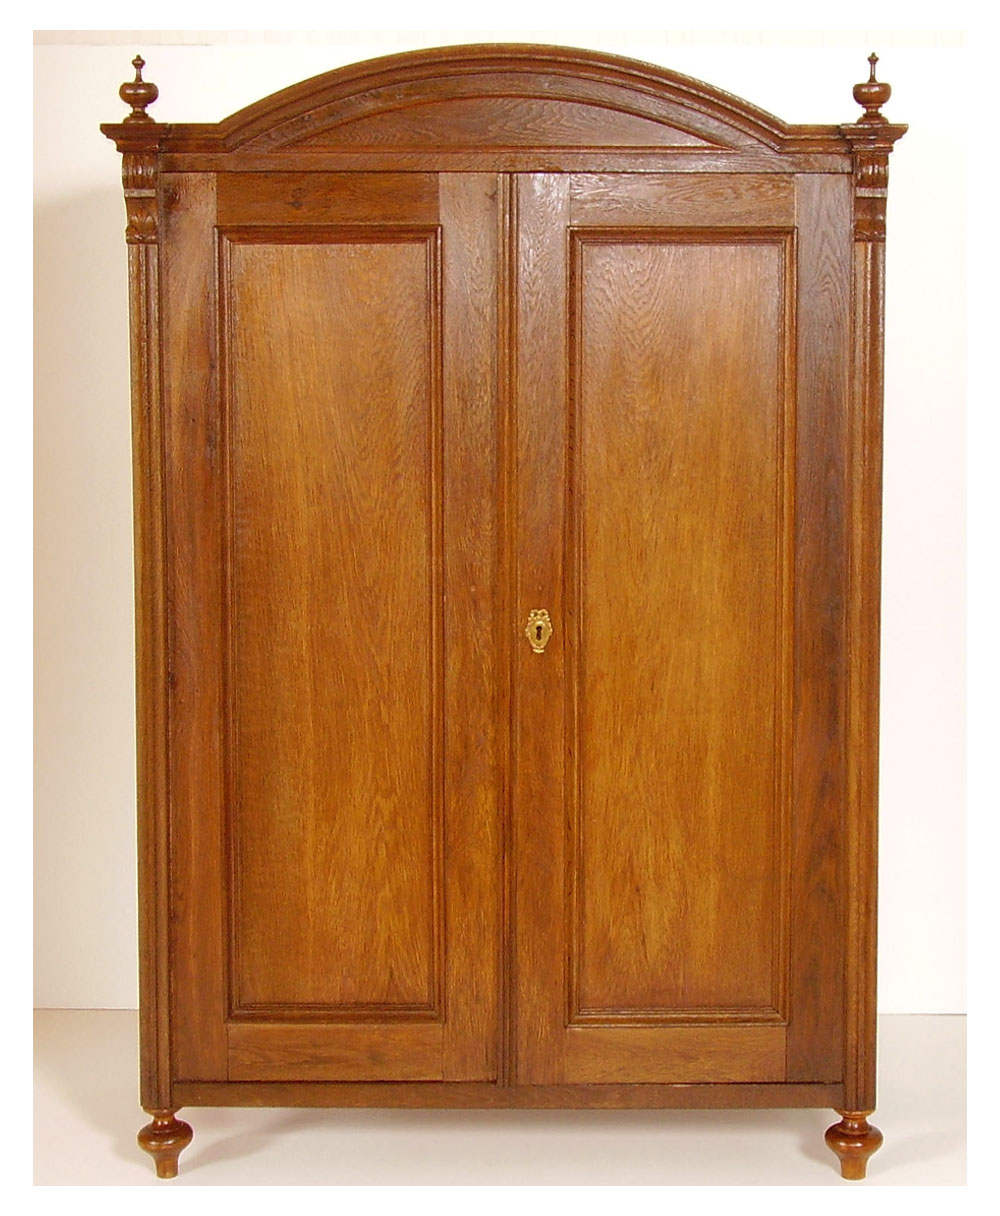 Antique cabinet bookcase wardrobe antico armadio for Armadio antico